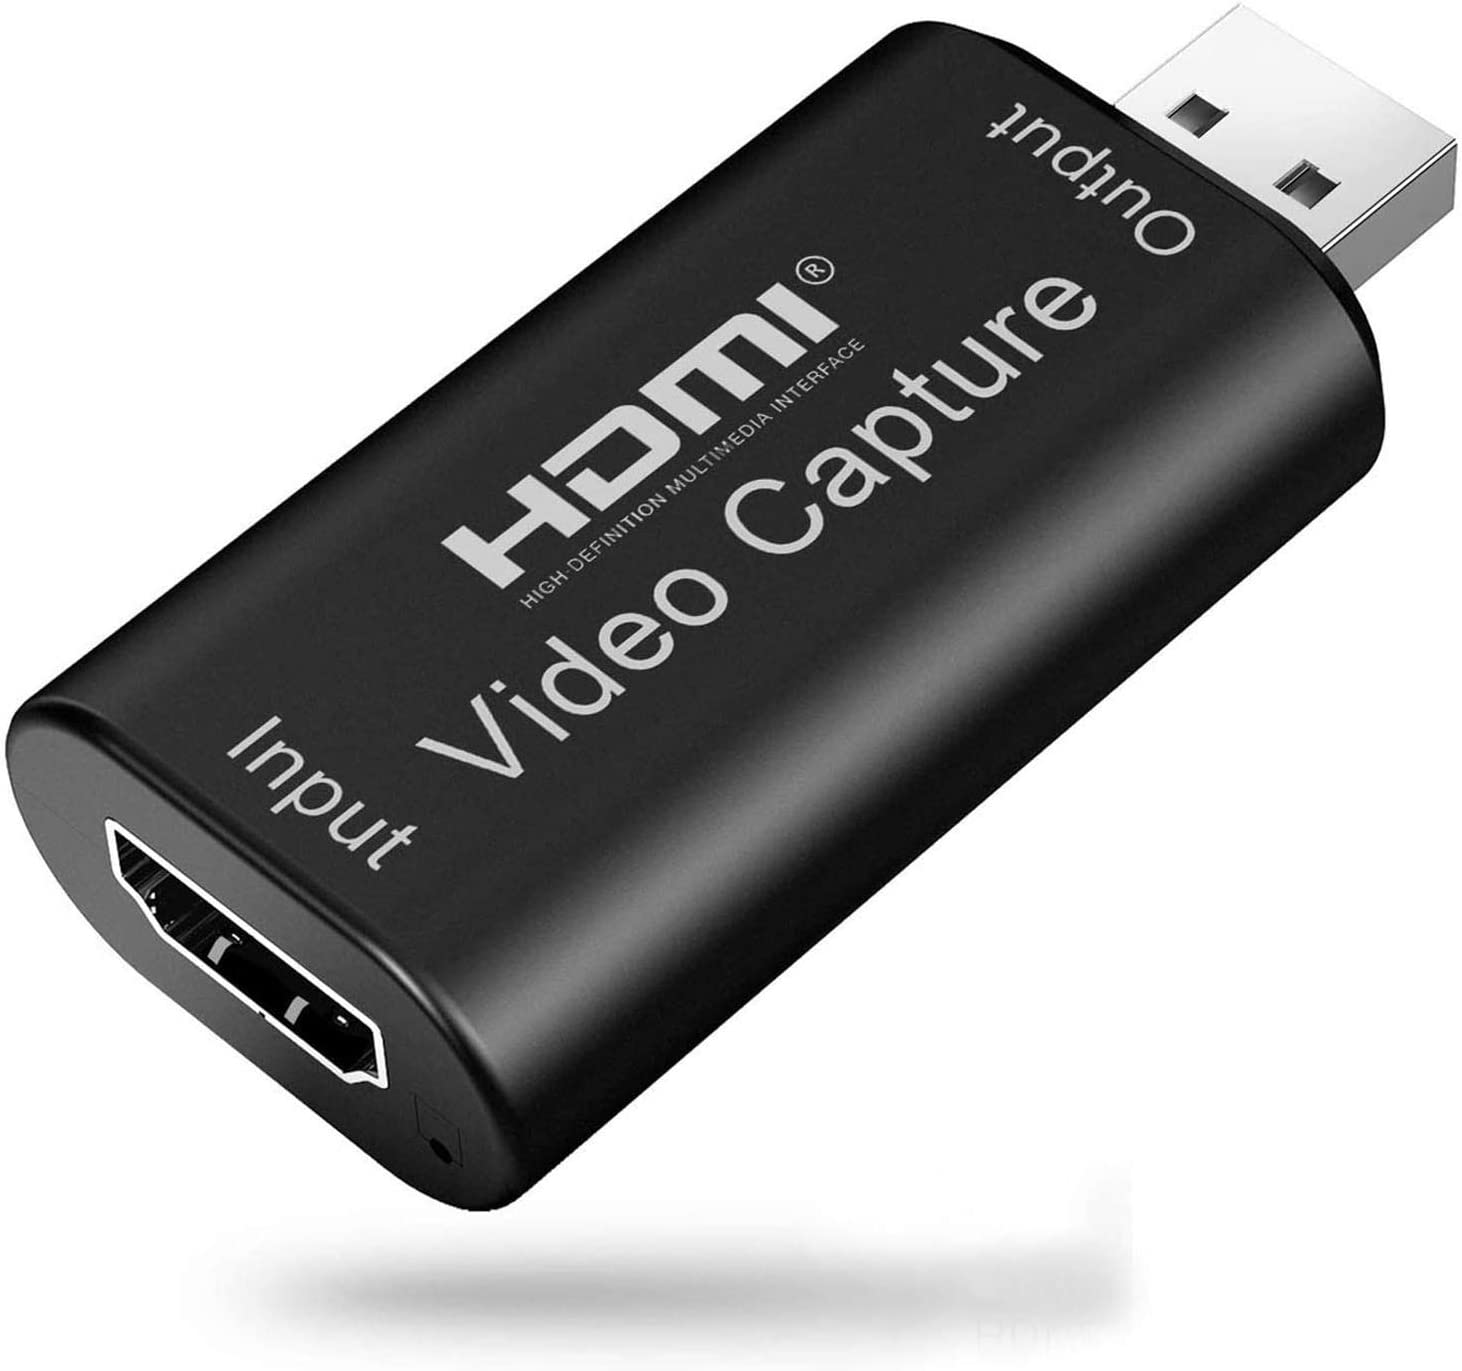 Audio Video Capture Card HDMI to USB High Definition 1080p USB 2.0 Record via DSLR Camcorder Action Cam Computer for Gaming, Streaming, Teaching, Video Conference or Live Broadcasting